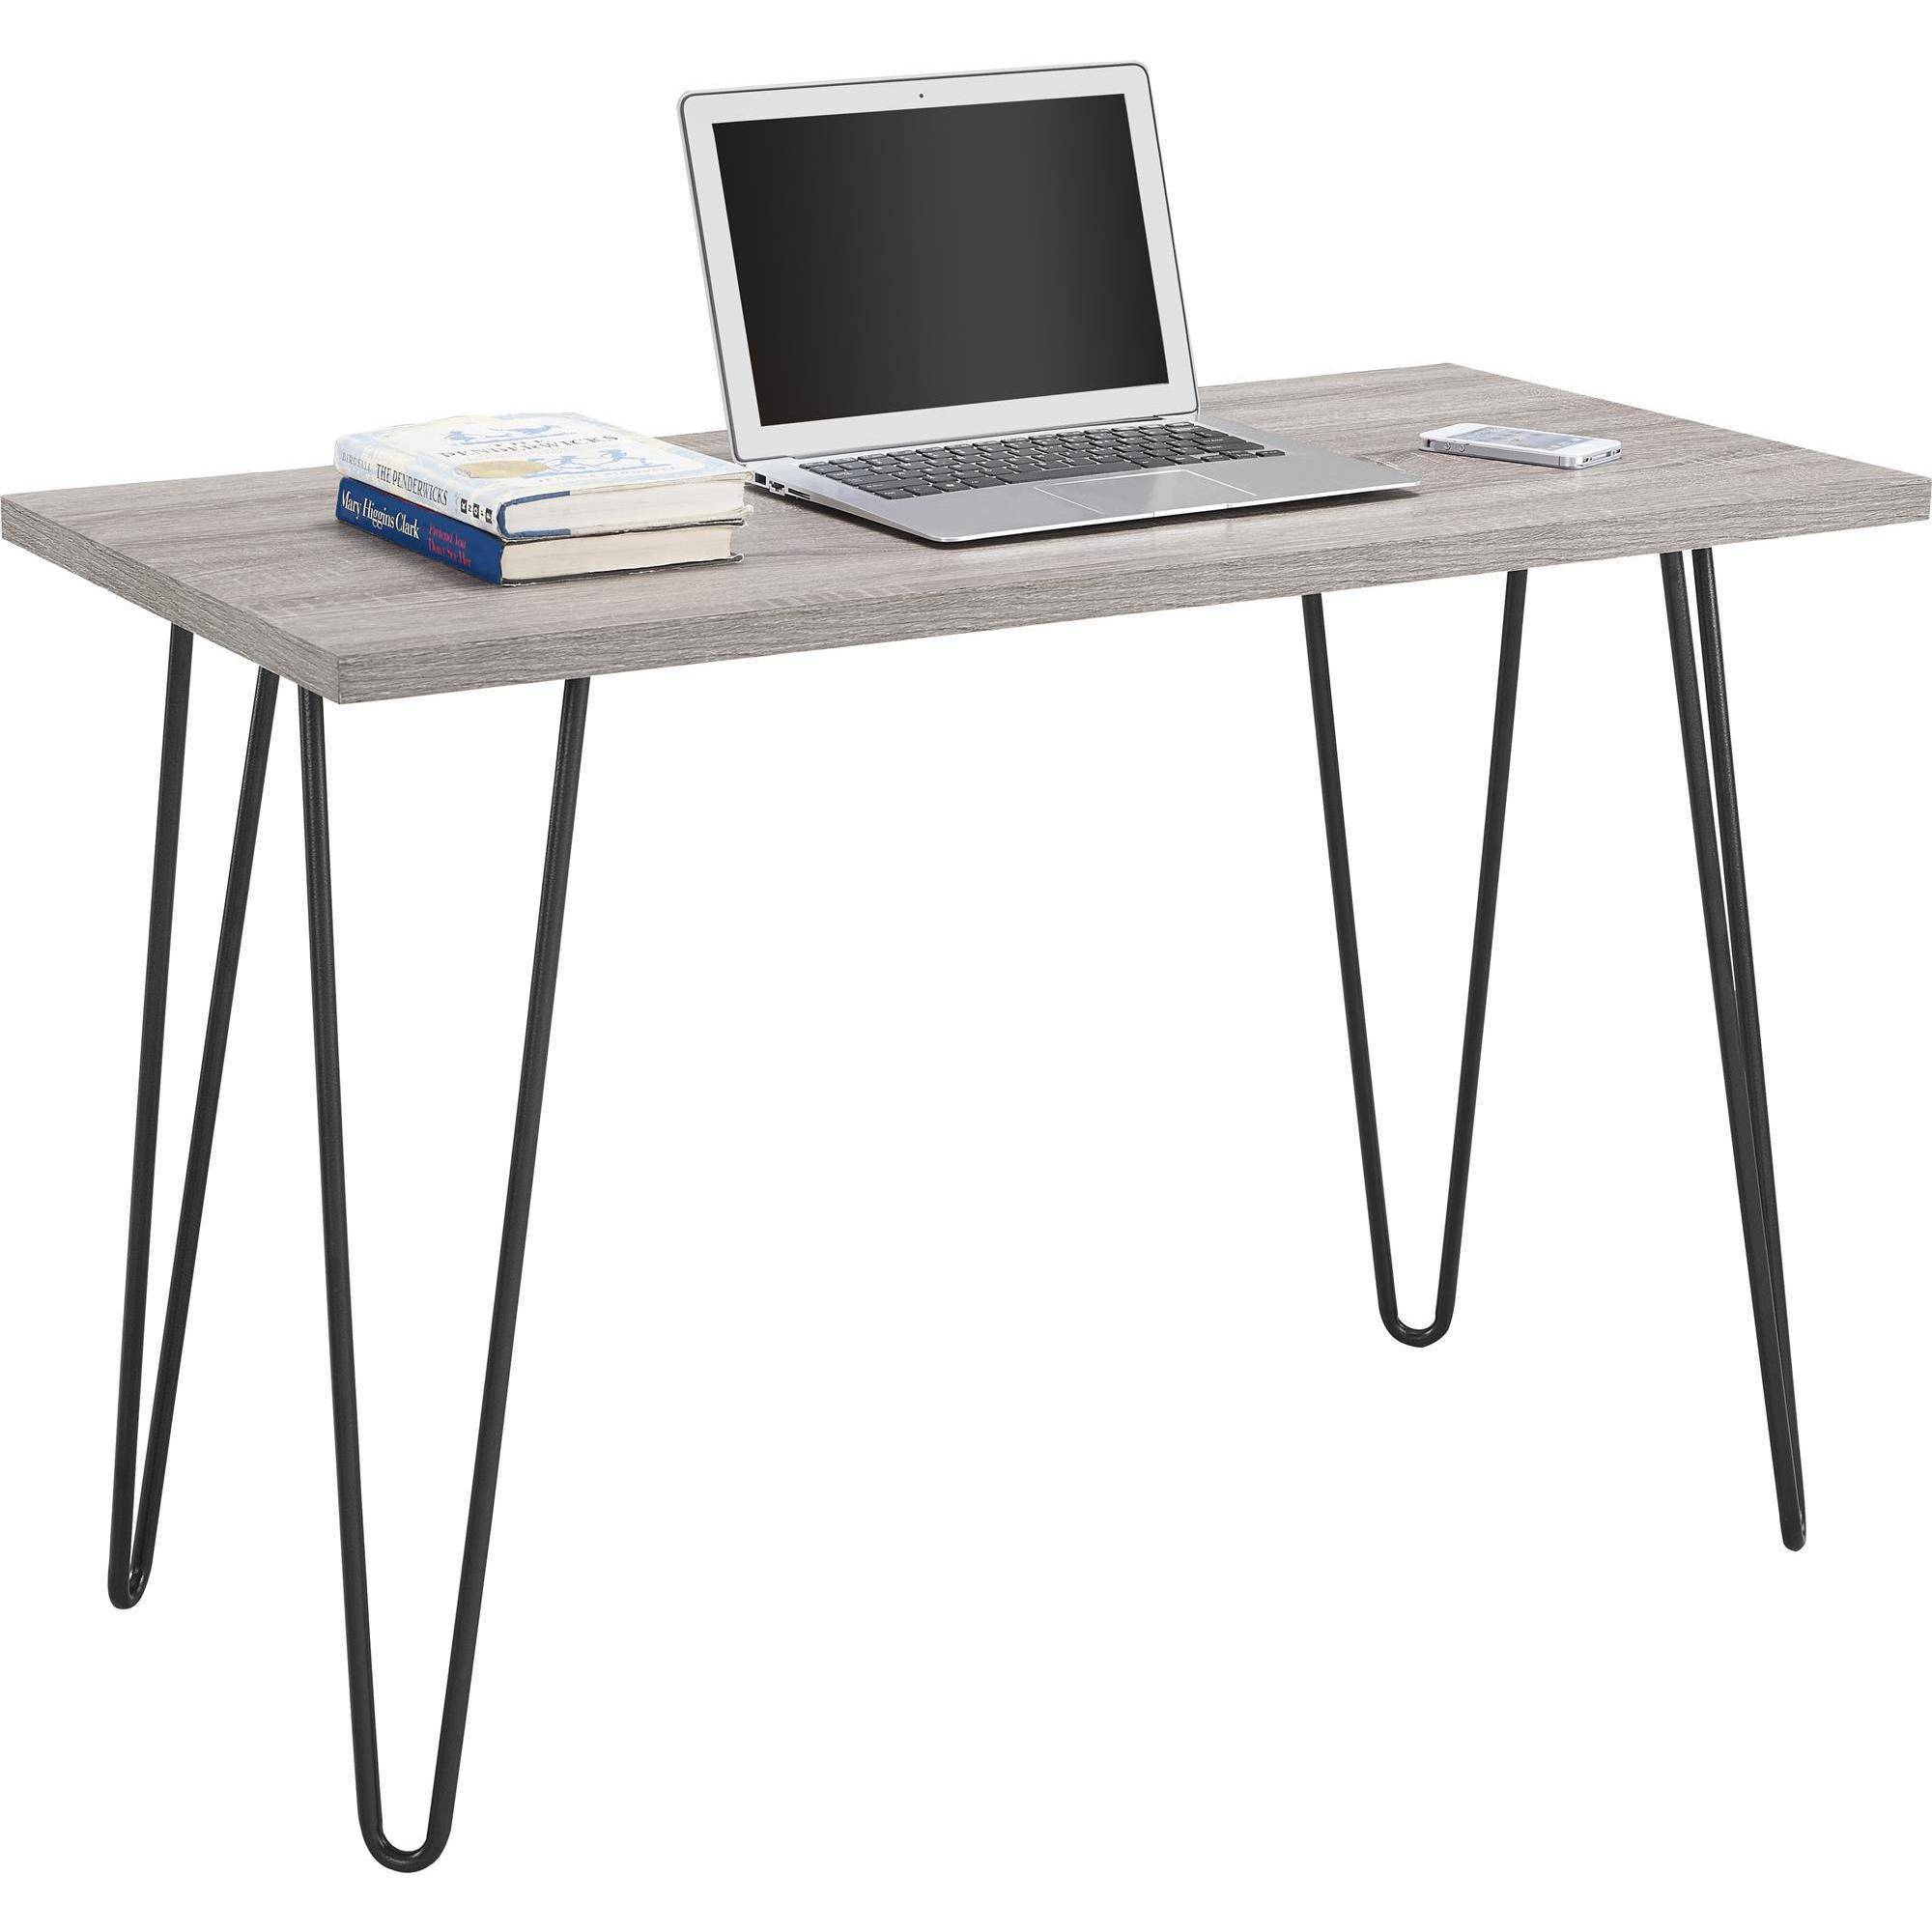 Popular 225 List Gray Writing Desk